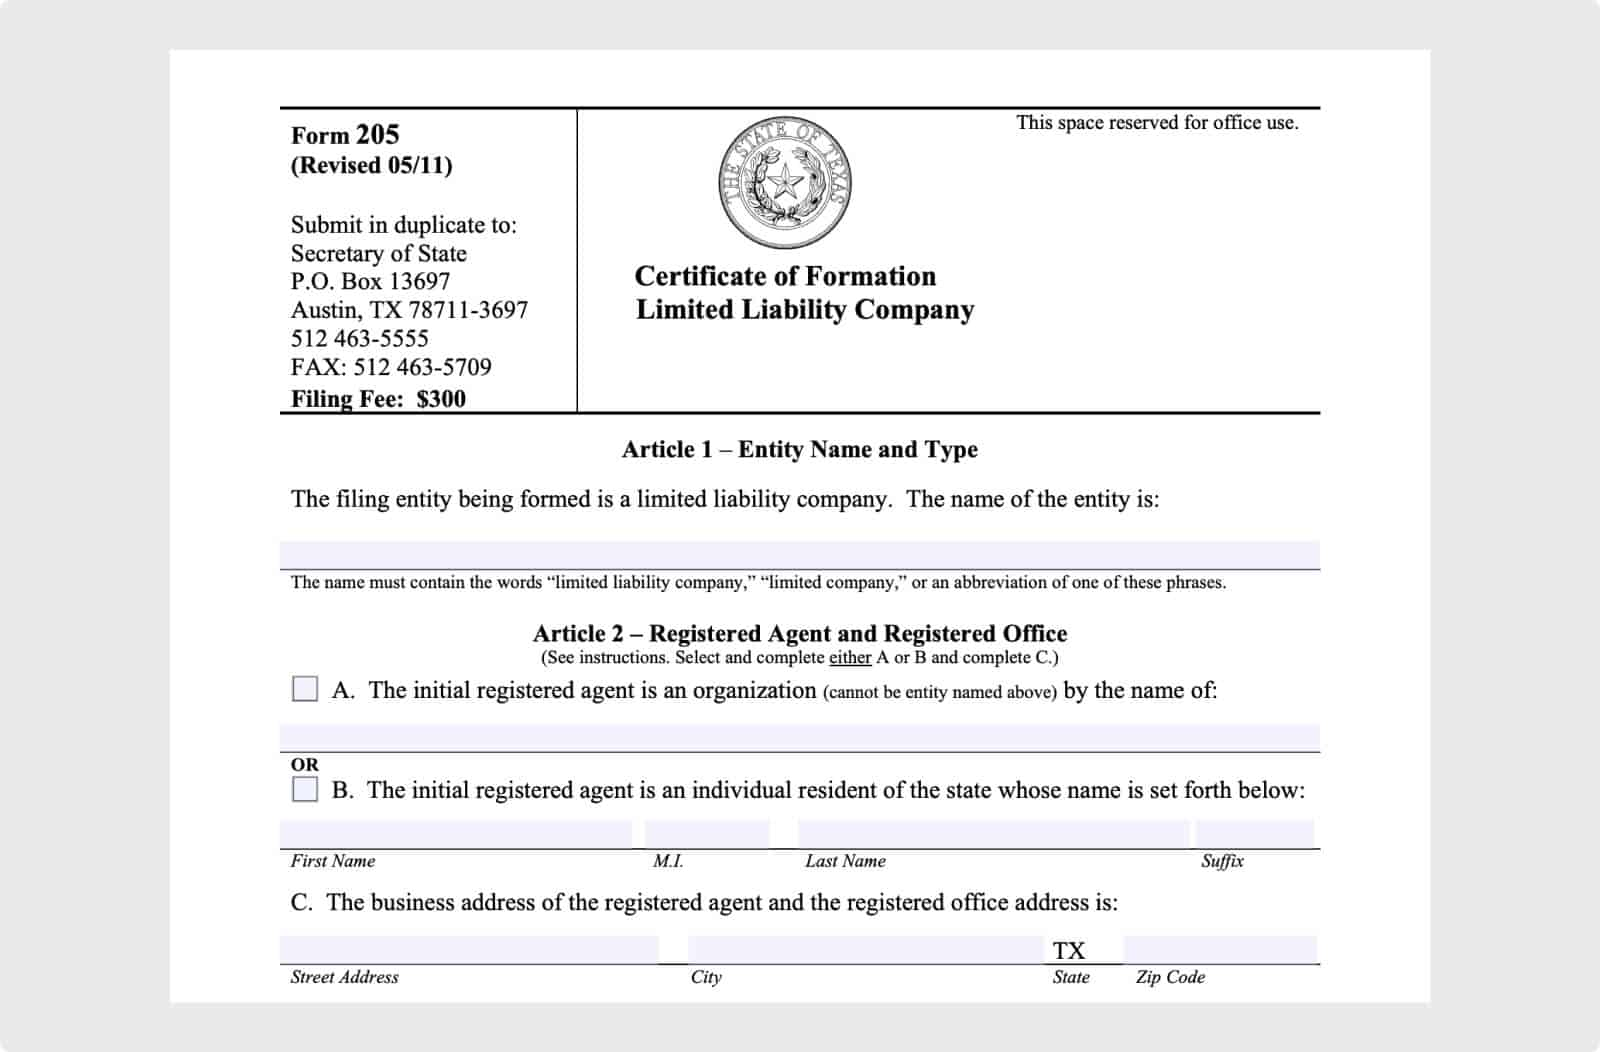 Texas Secretary of State Form 205 Certificate of Formation.